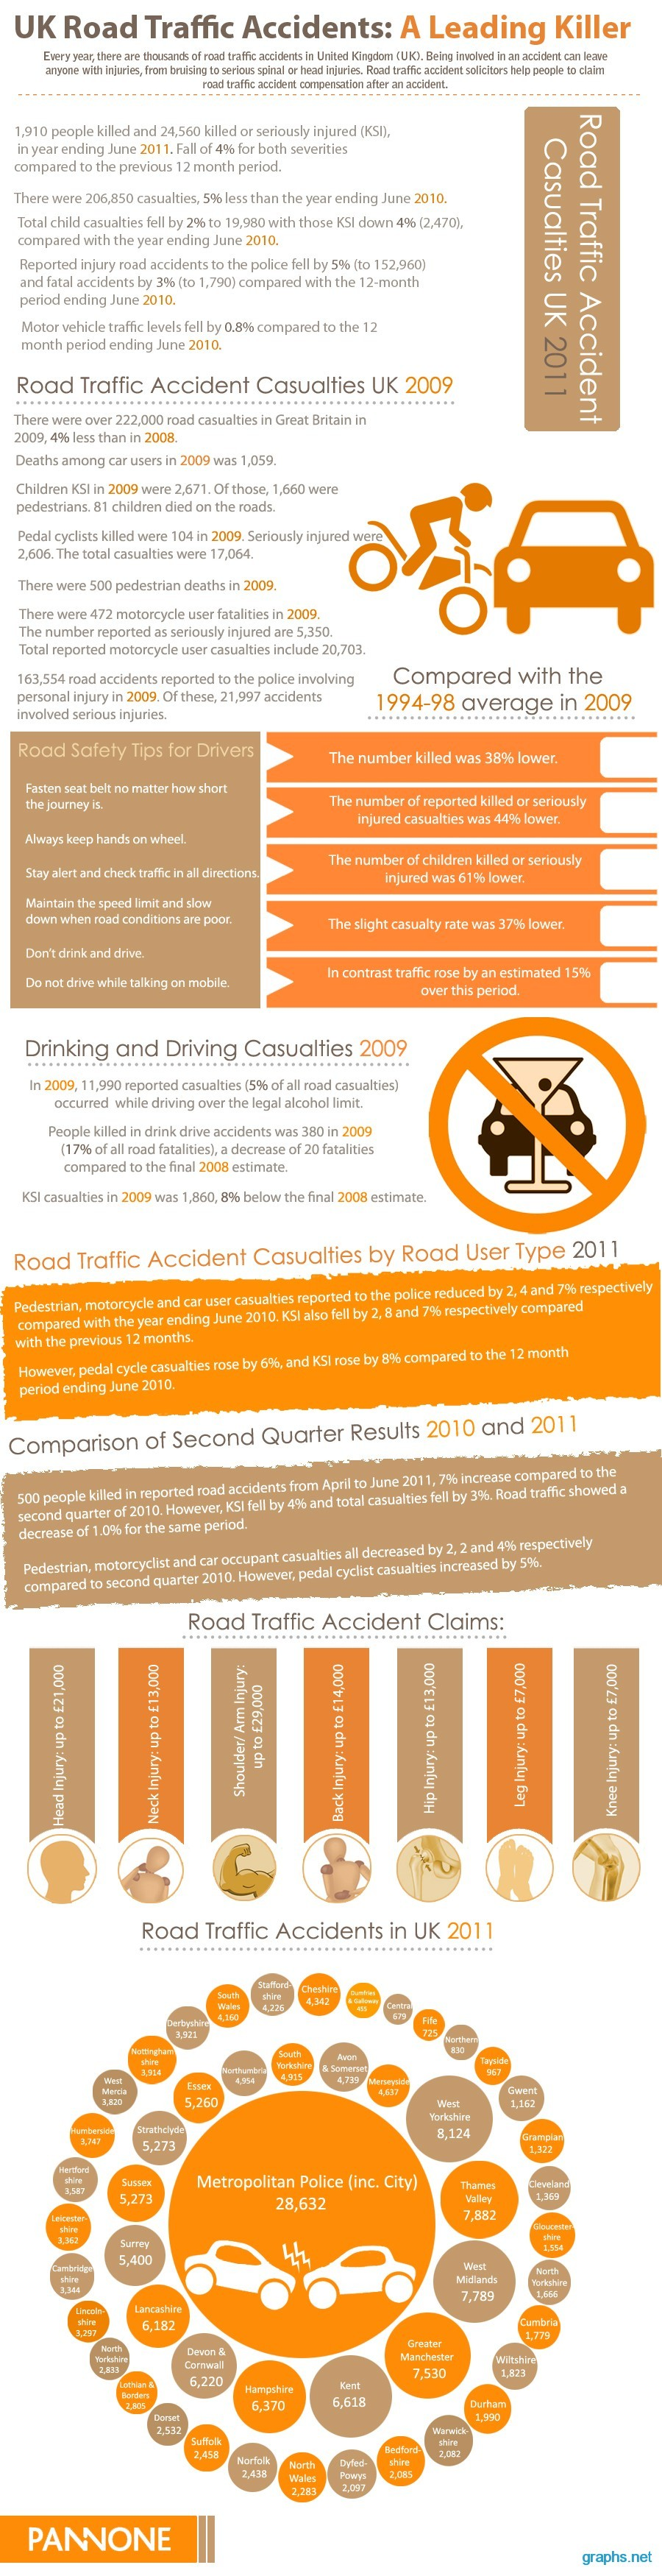 road traffic accident statistics uk